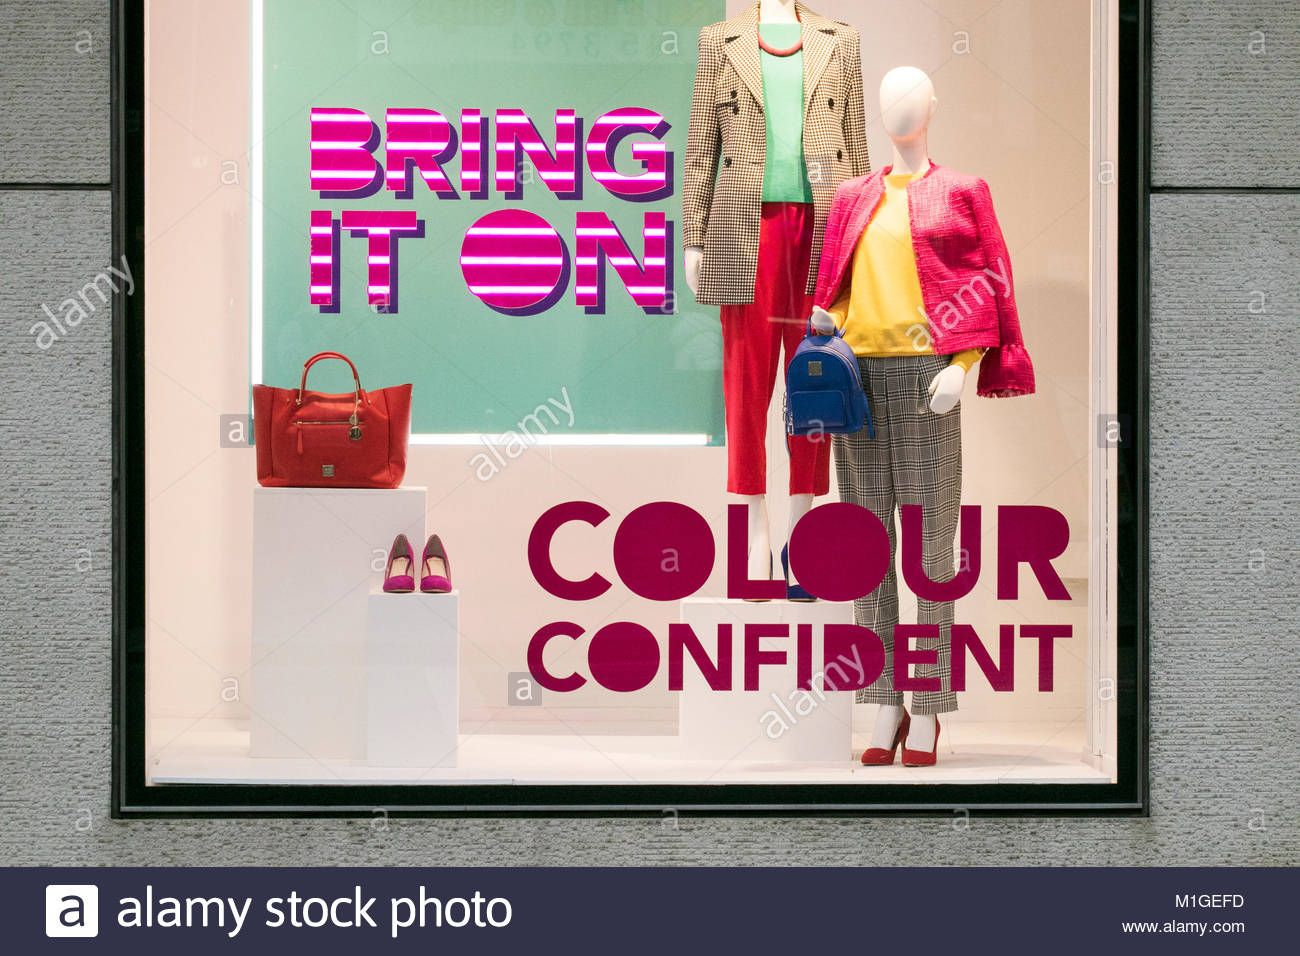 af1d4a82f25 Clothing store shop window displays showing the latest retail products on  sale